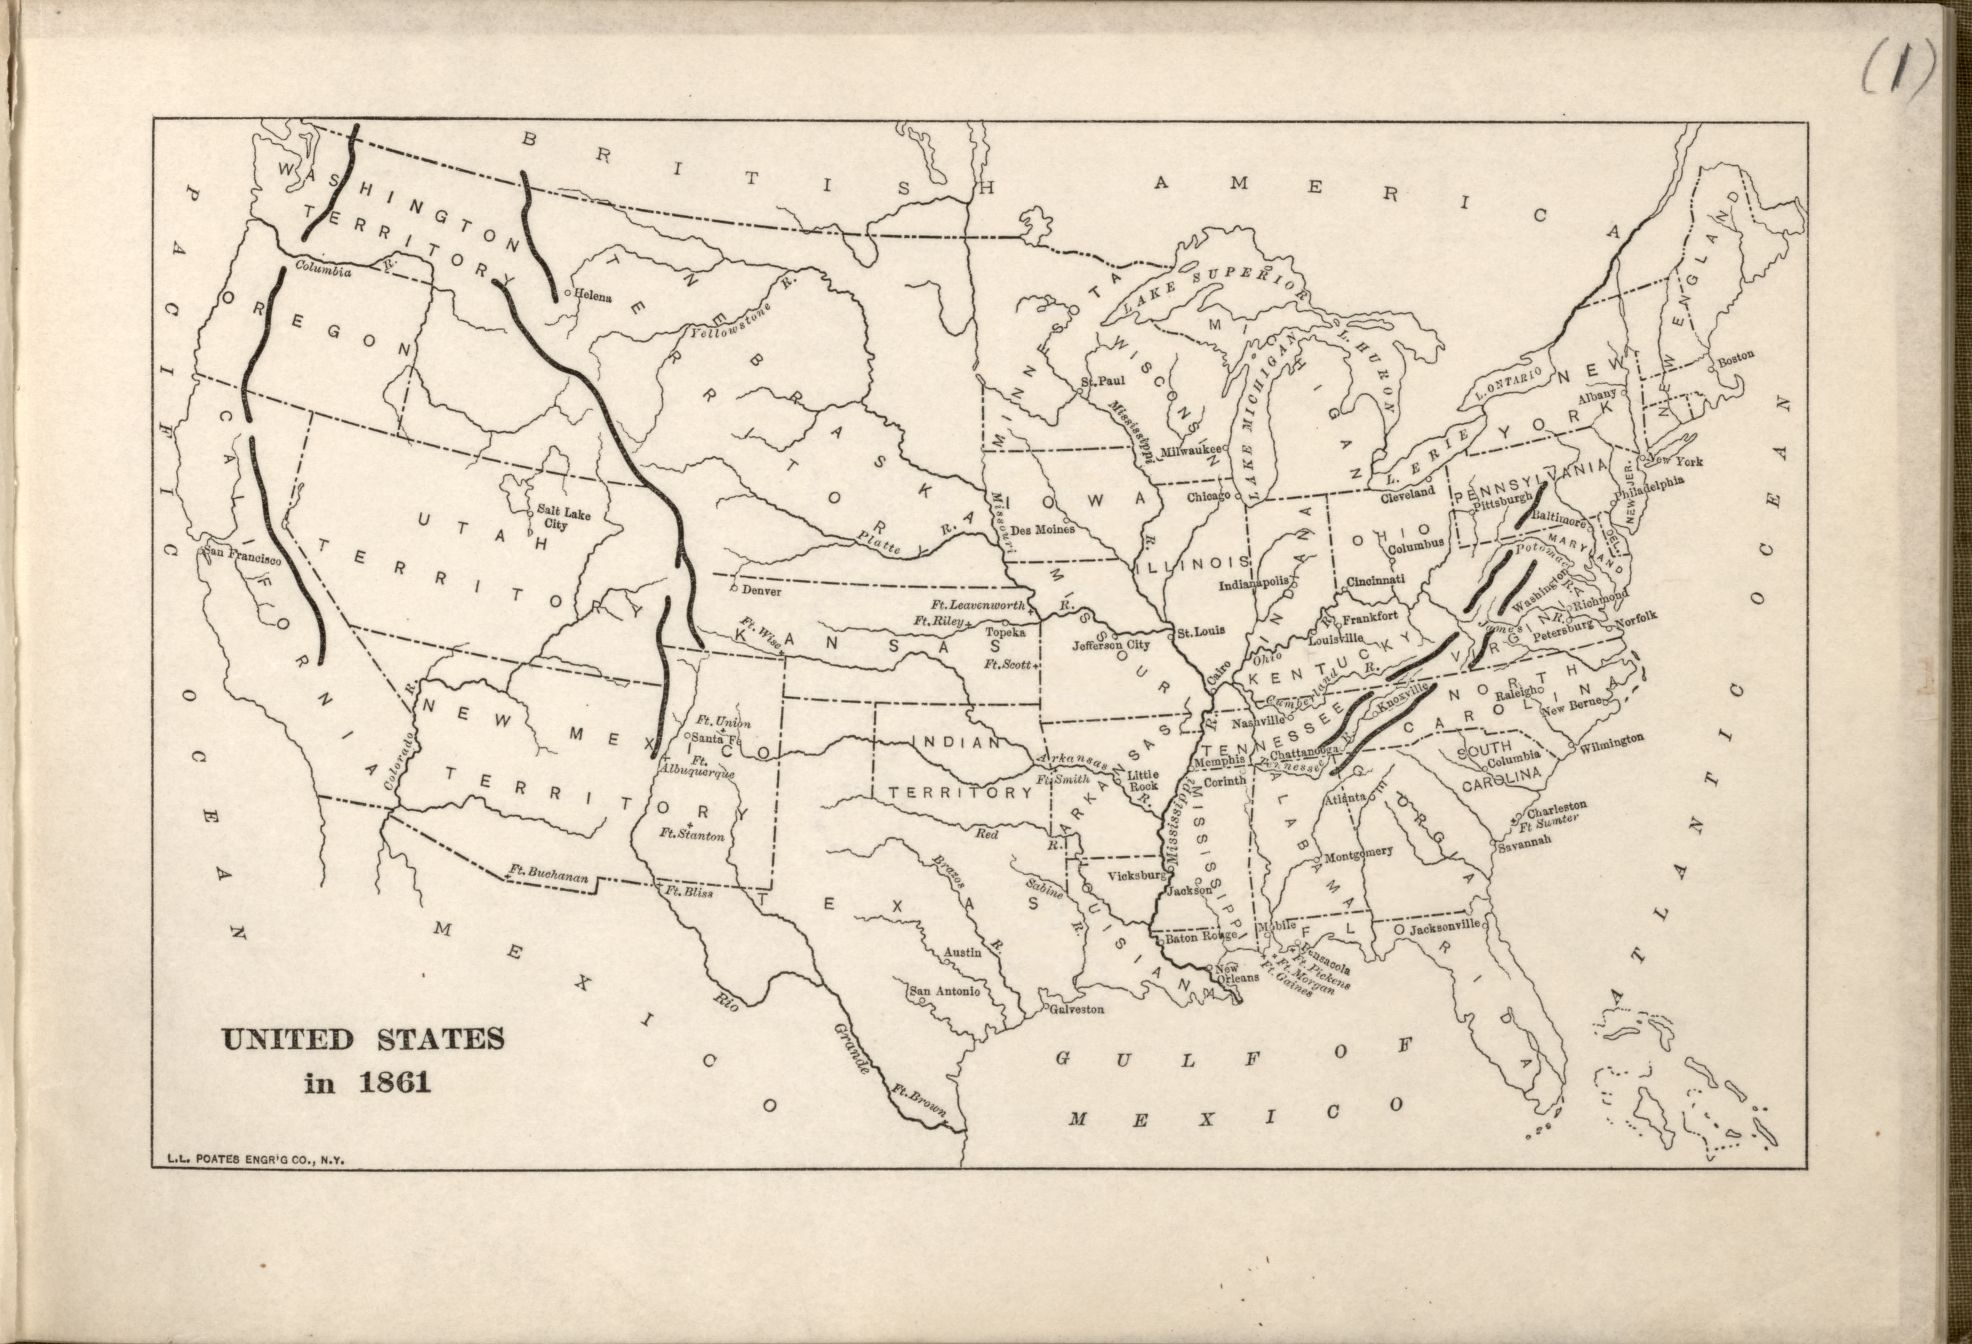 Map of the U.S. in 1861 – Historical Maps Collection